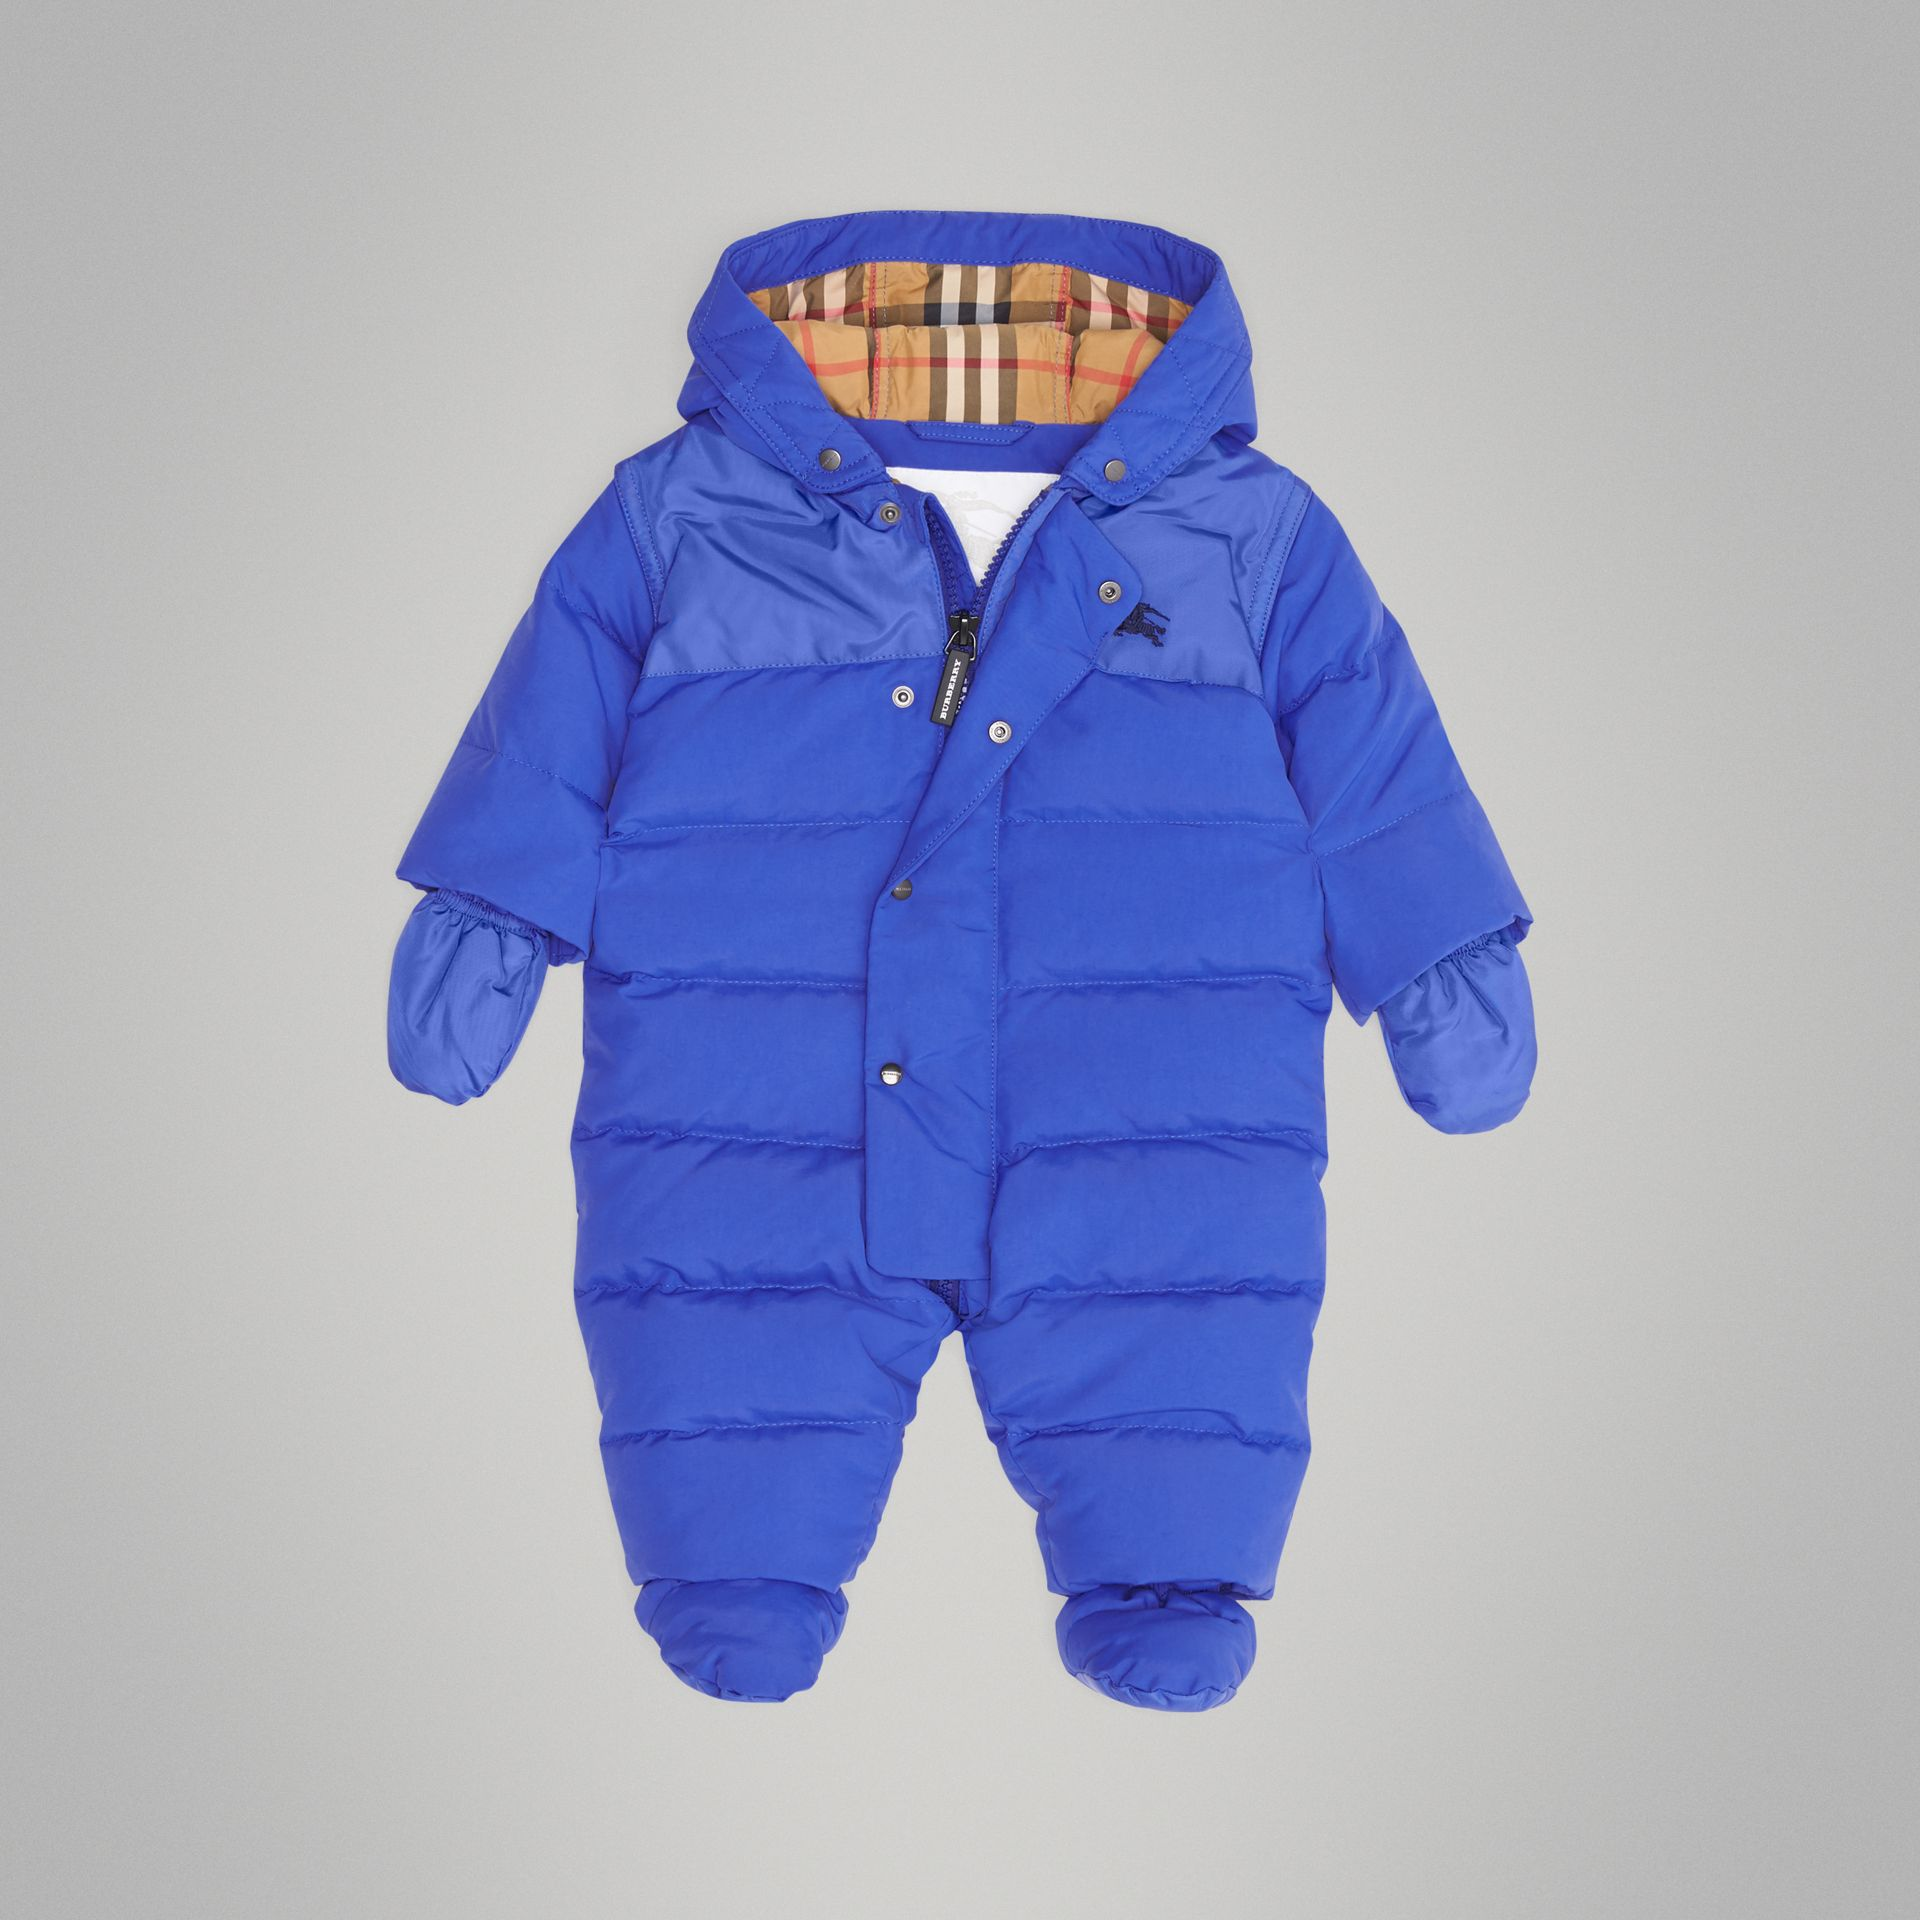 Down-filled Puffer Suit in Royal Blue - Children | Burberry - gallery image 2